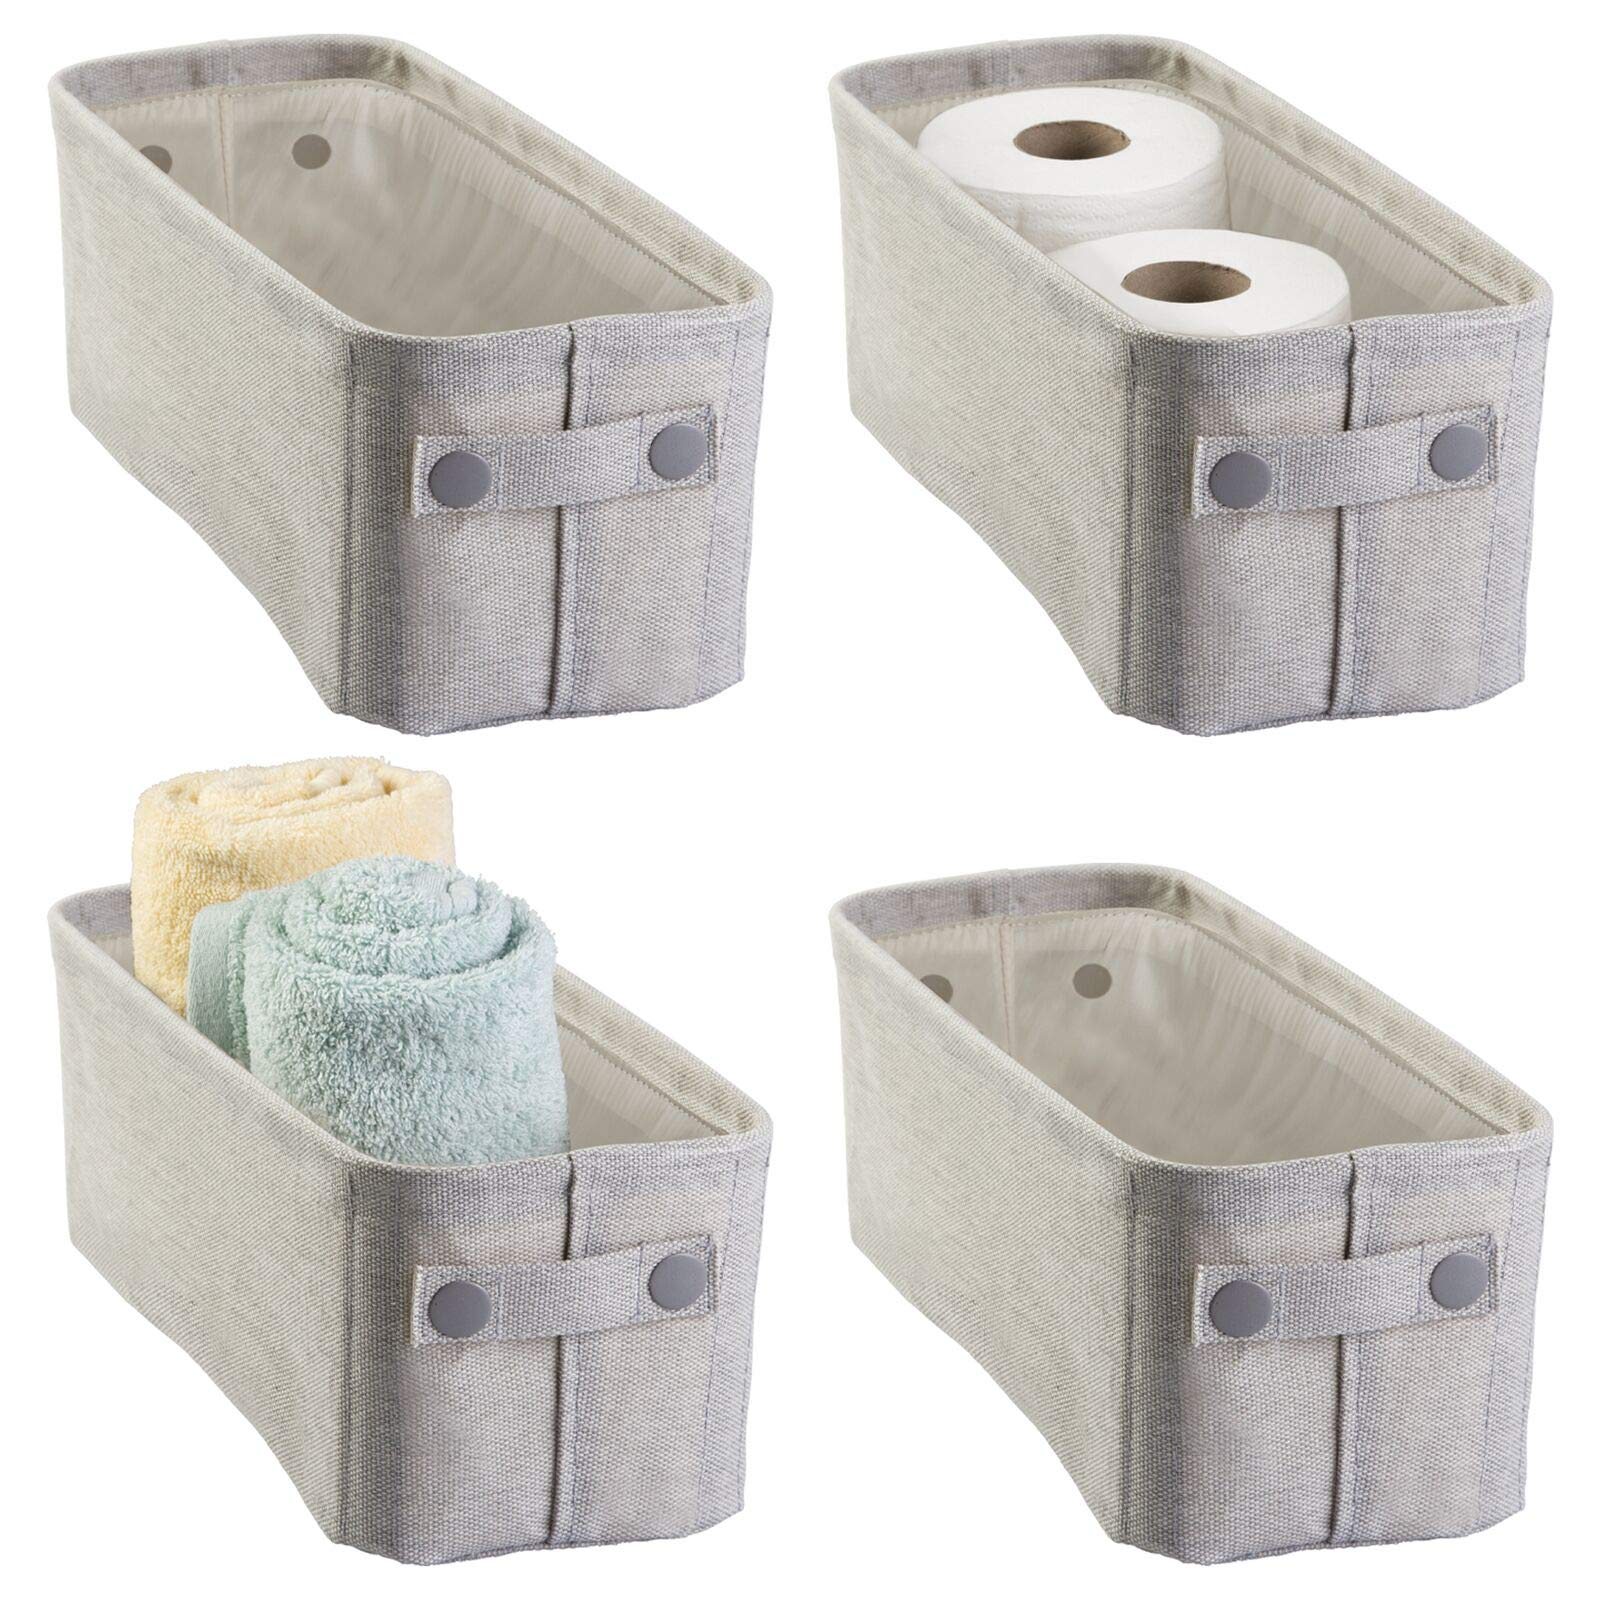 Amazon Com Mdesign Soft Cotton Fabric Bathroom Storage Bin With Attached Handles Organizer For Towels Toilet Paper Rolls For Back Of Toilet Cabinets And Vanities 4 Pack Light Gray Home Kitchen